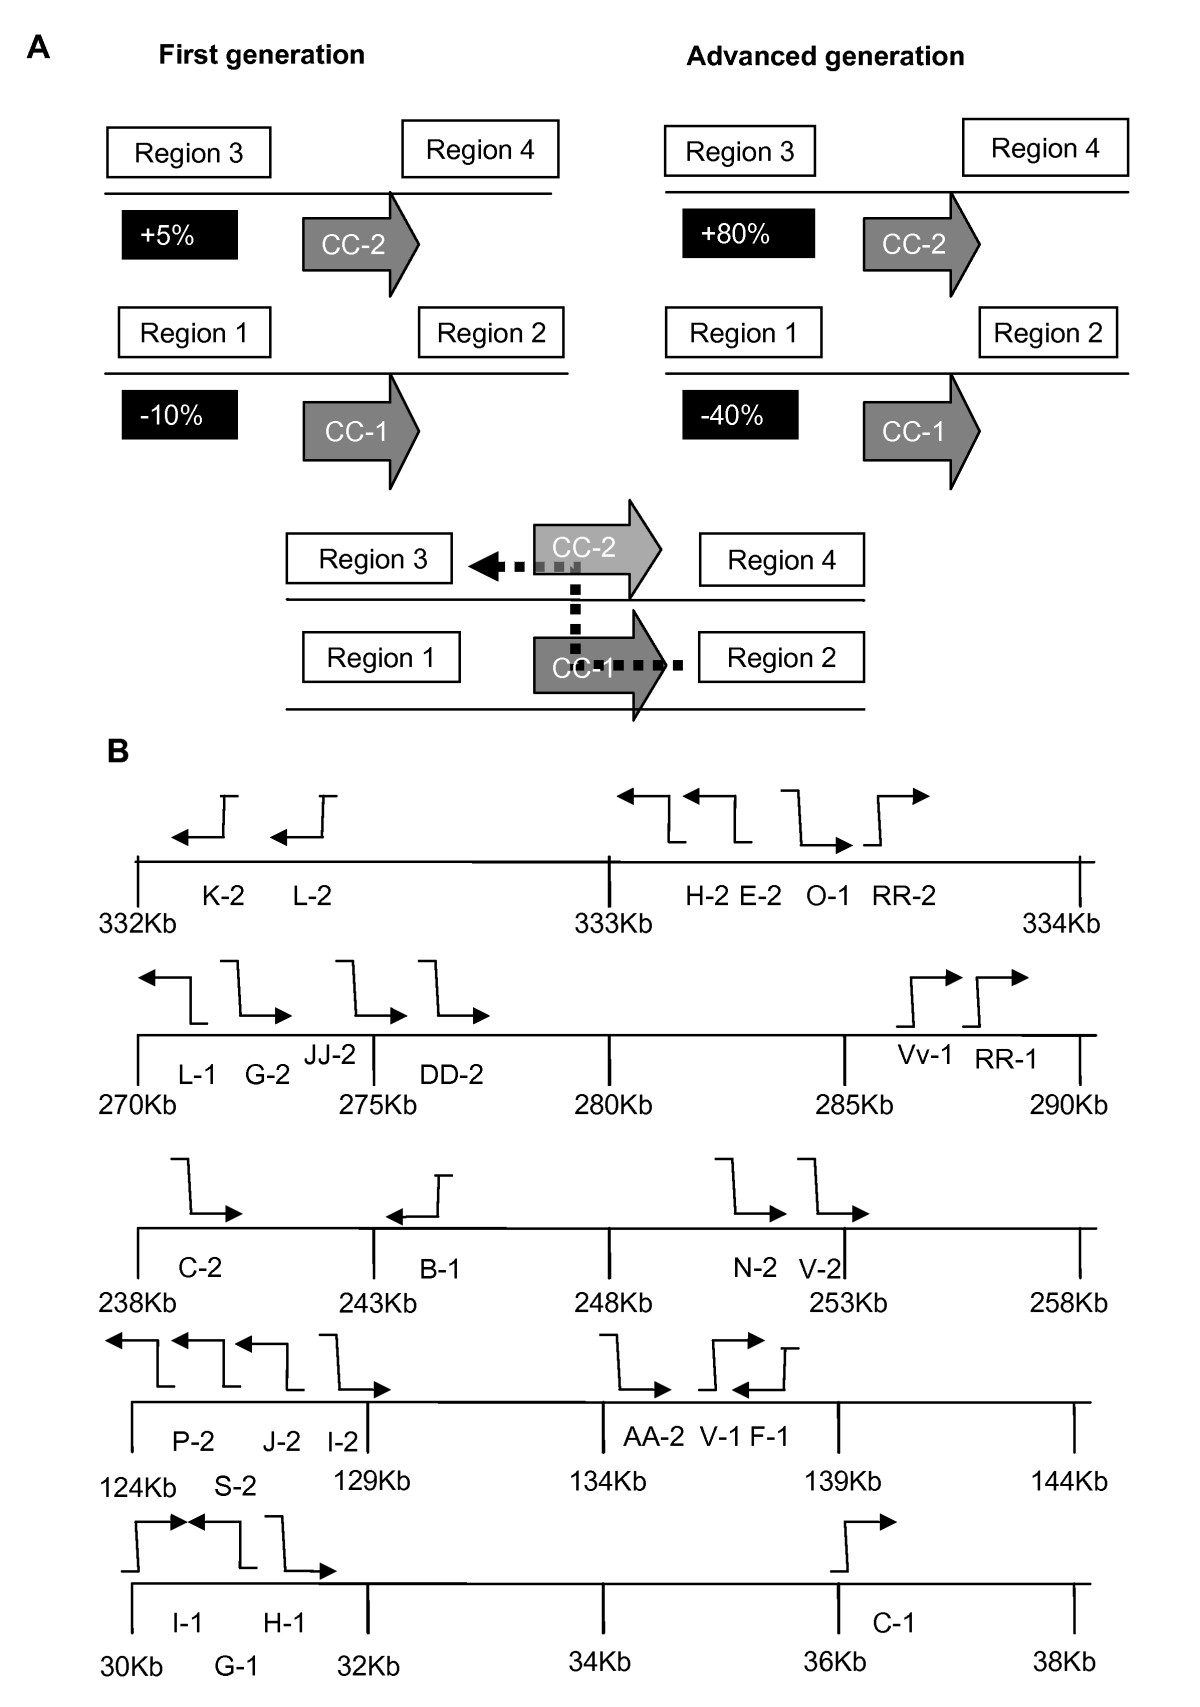 https://static-content.springer.com/image/art%3A10.1186%2F1741-7007-9-64/MediaObjects/12915_2011_Article_489_Fig2_HTML.jpg